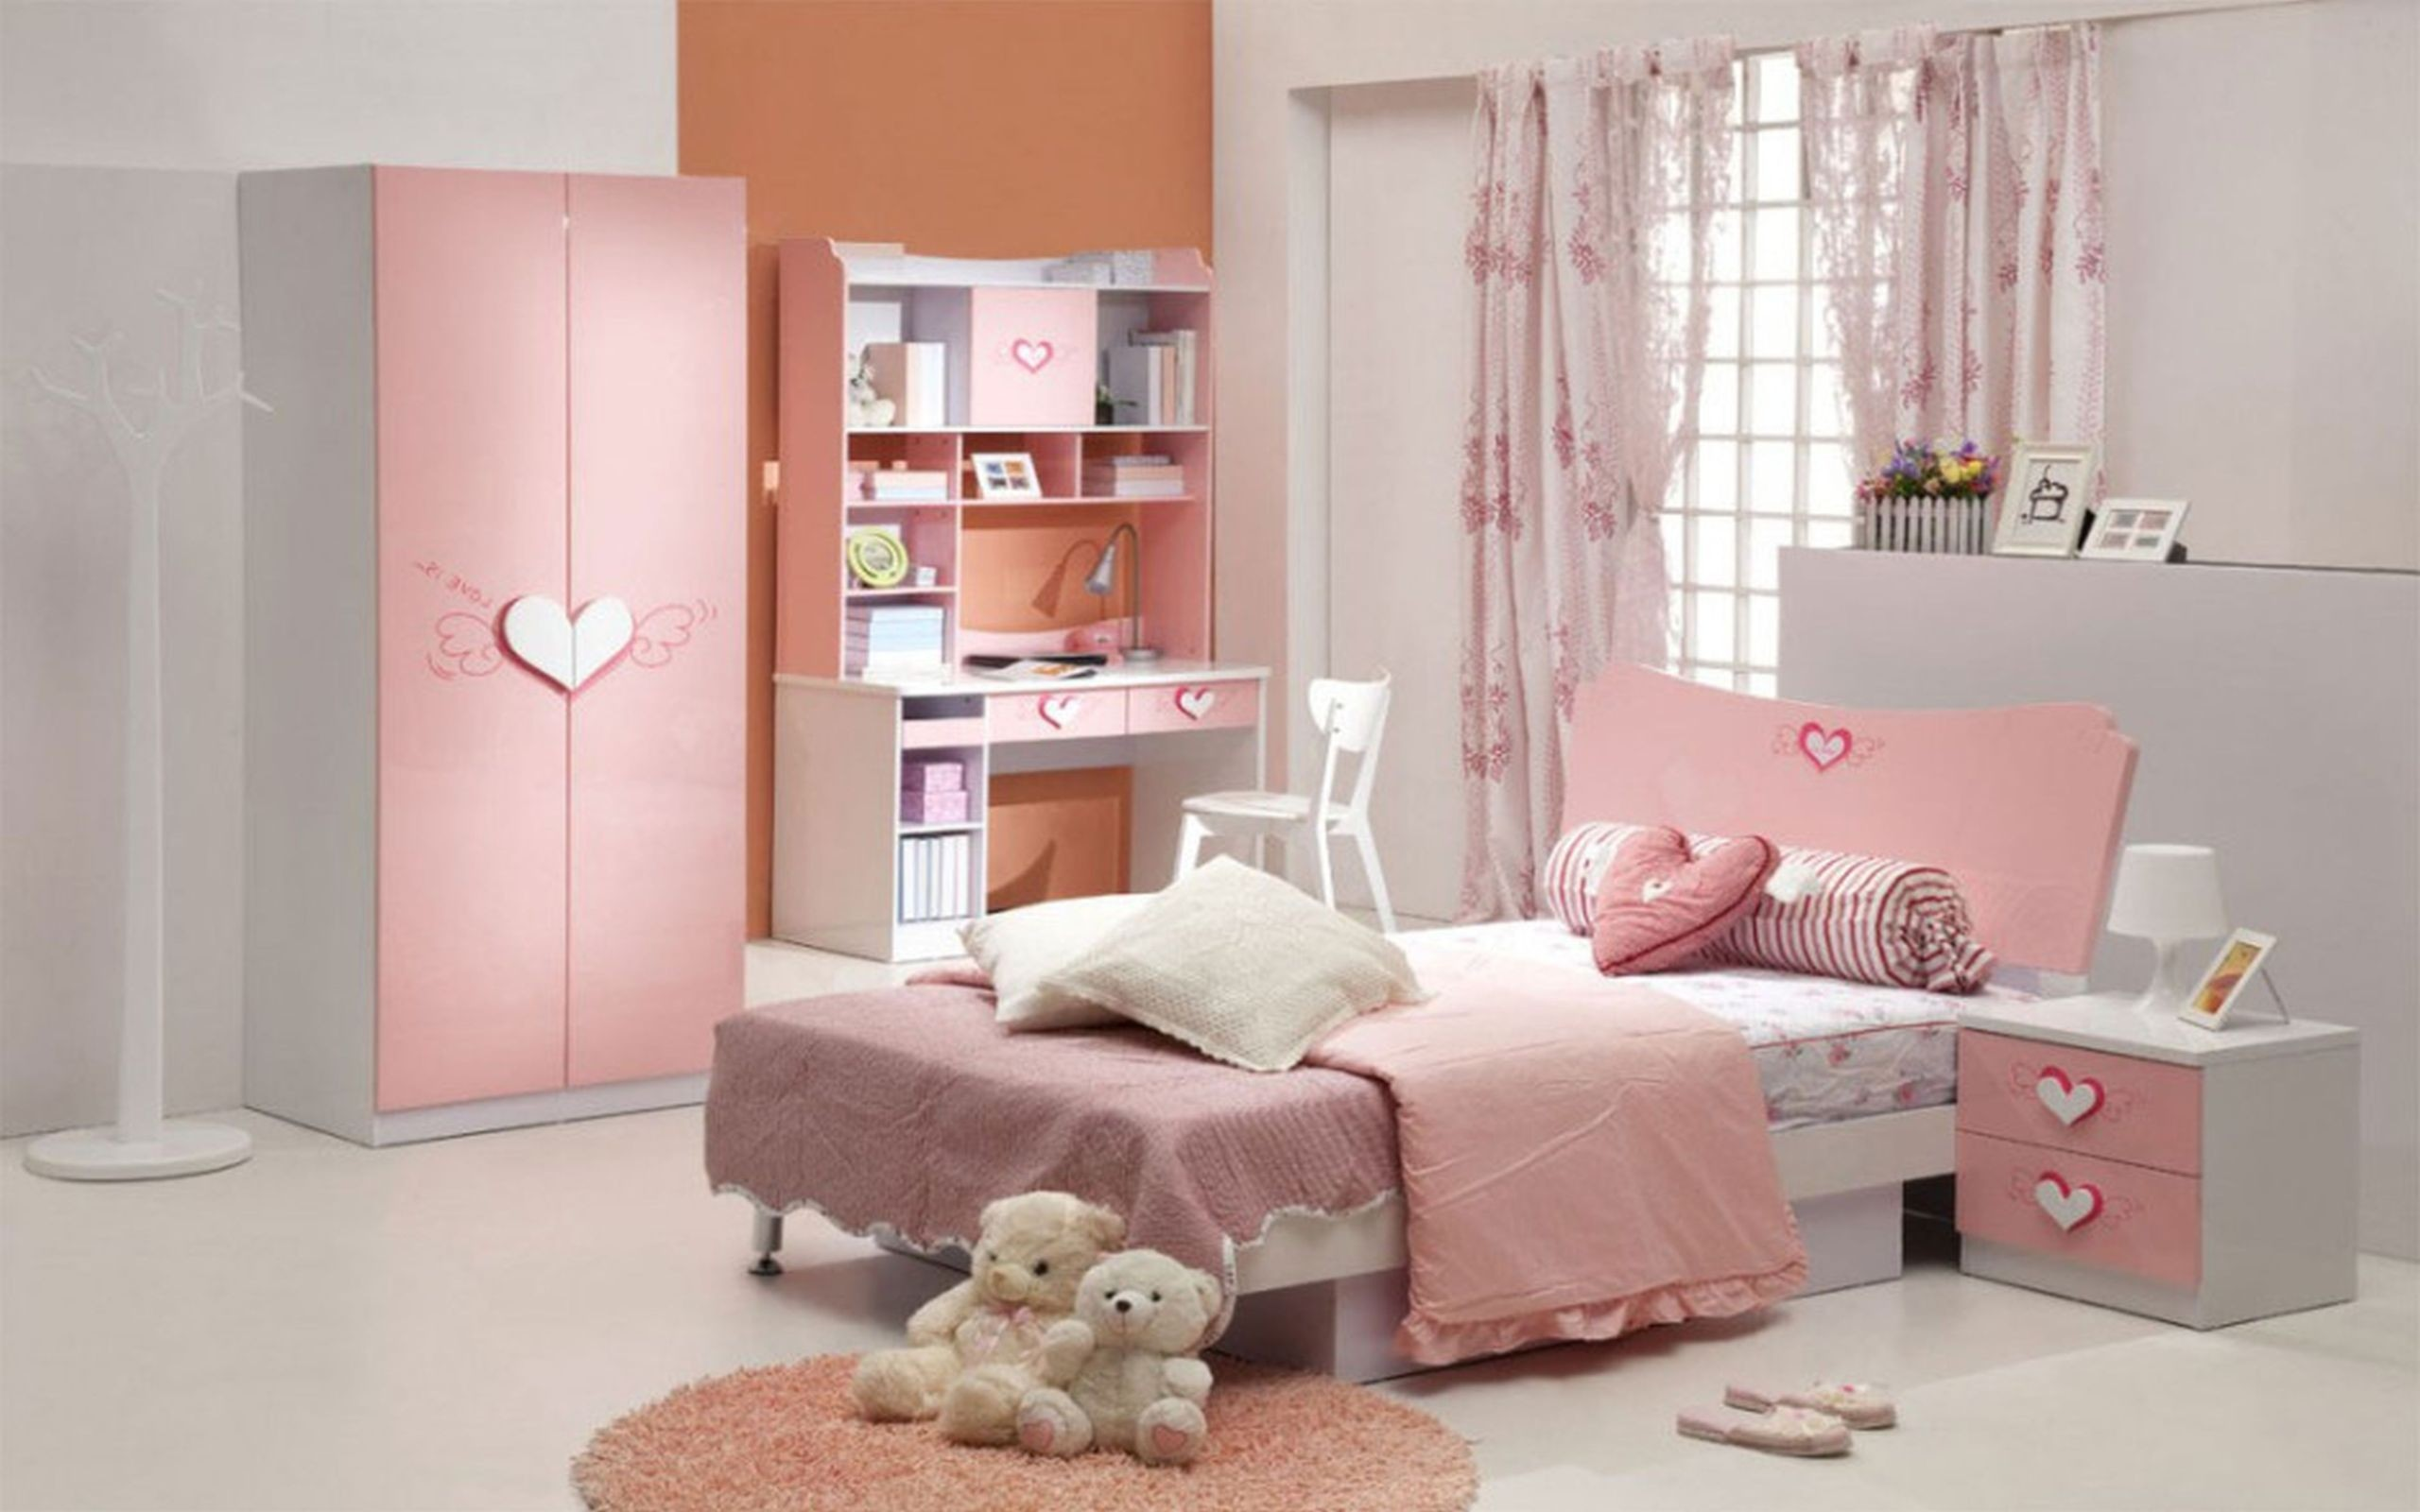 White Bunk Beds Girls Room Wallpaper House Pink And - Teenage Girl Designs For Girls Bedroom , HD Wallpaper & Backgrounds